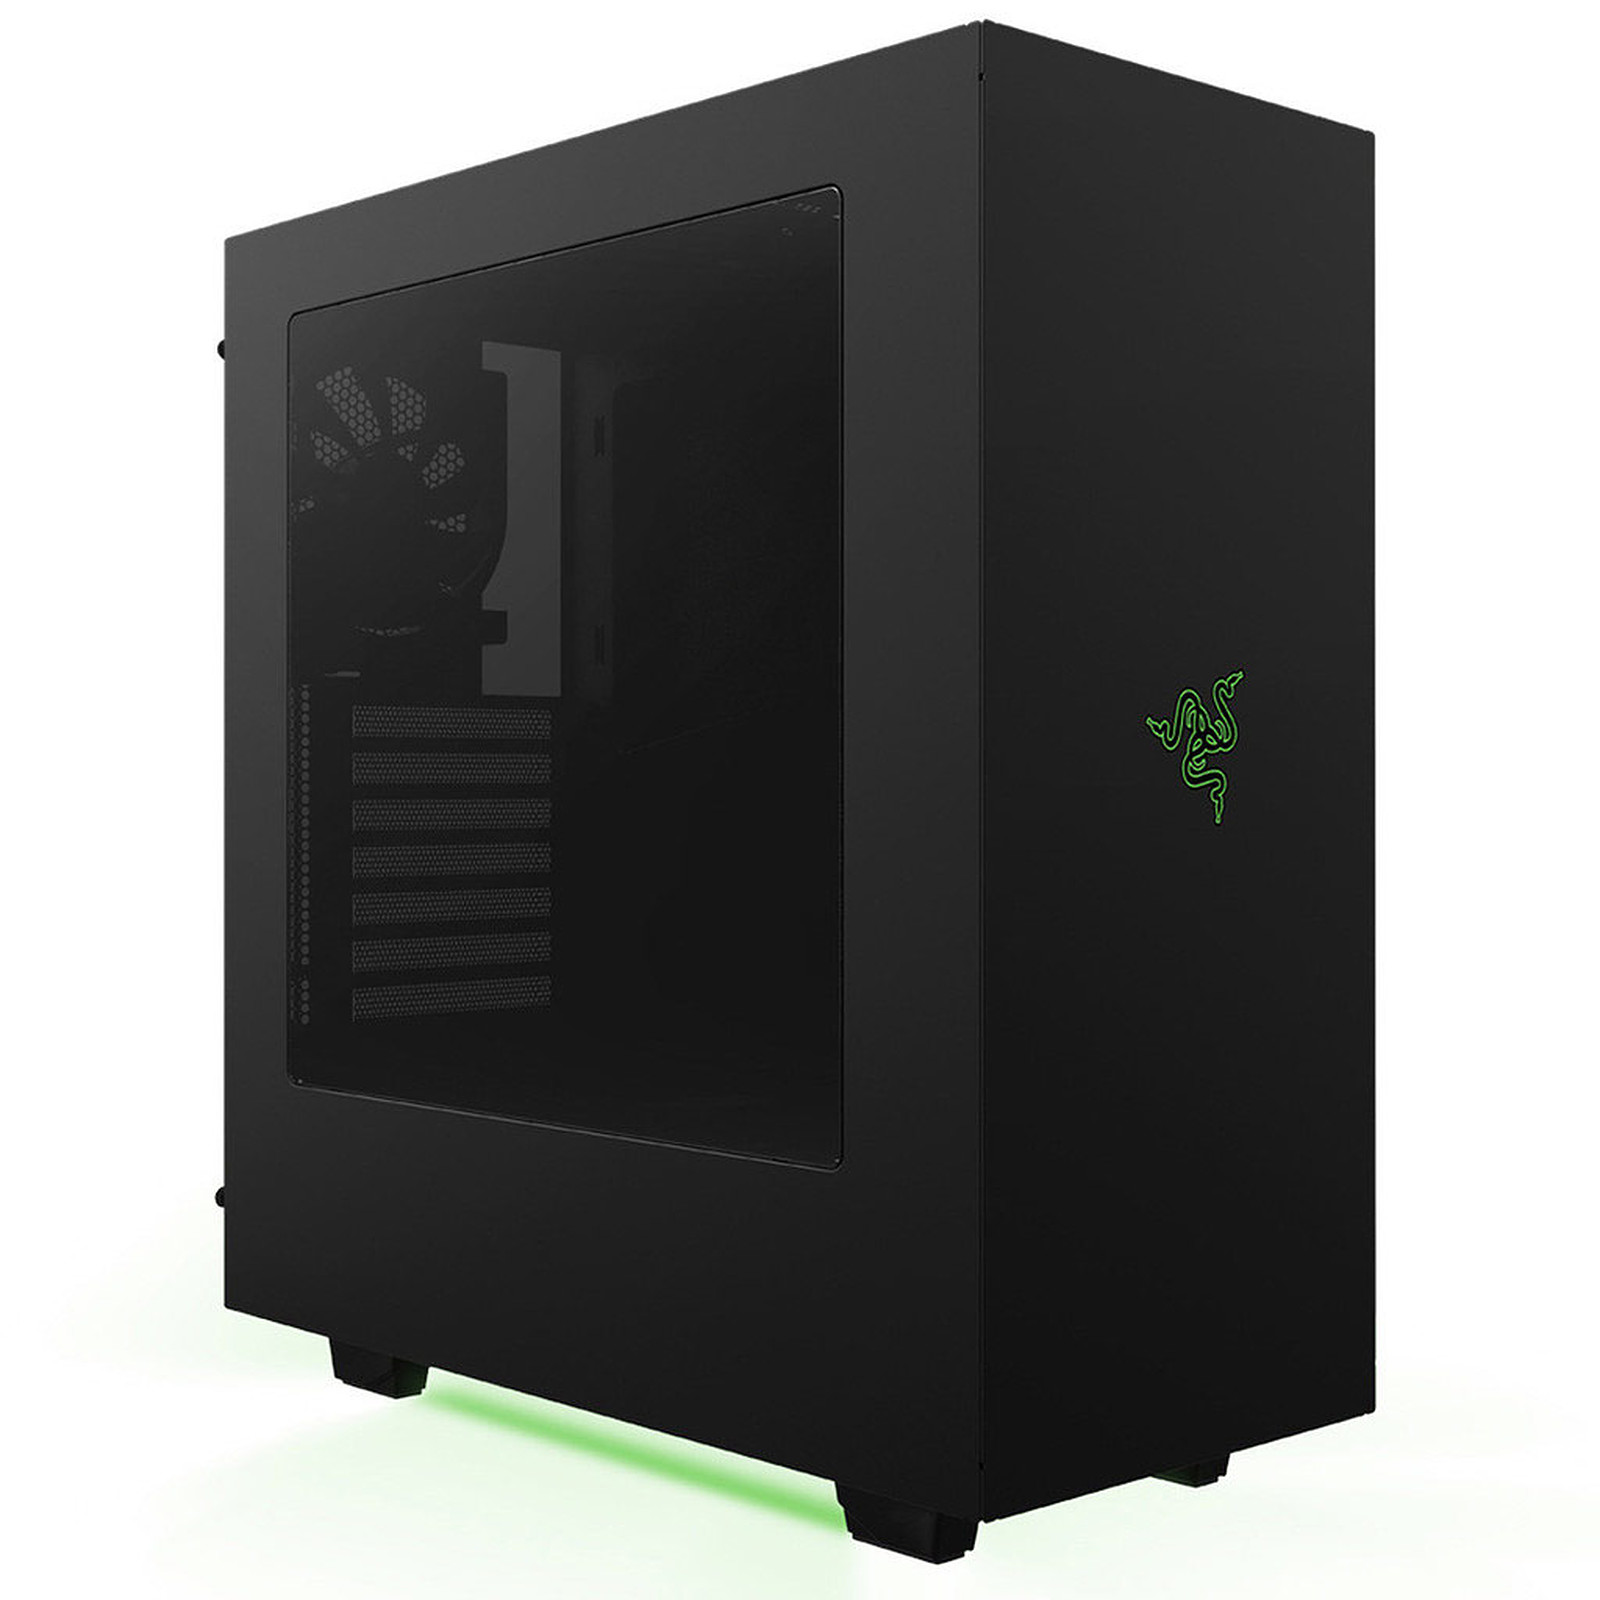 NZXT Source 340 Special Edition designed by Razer